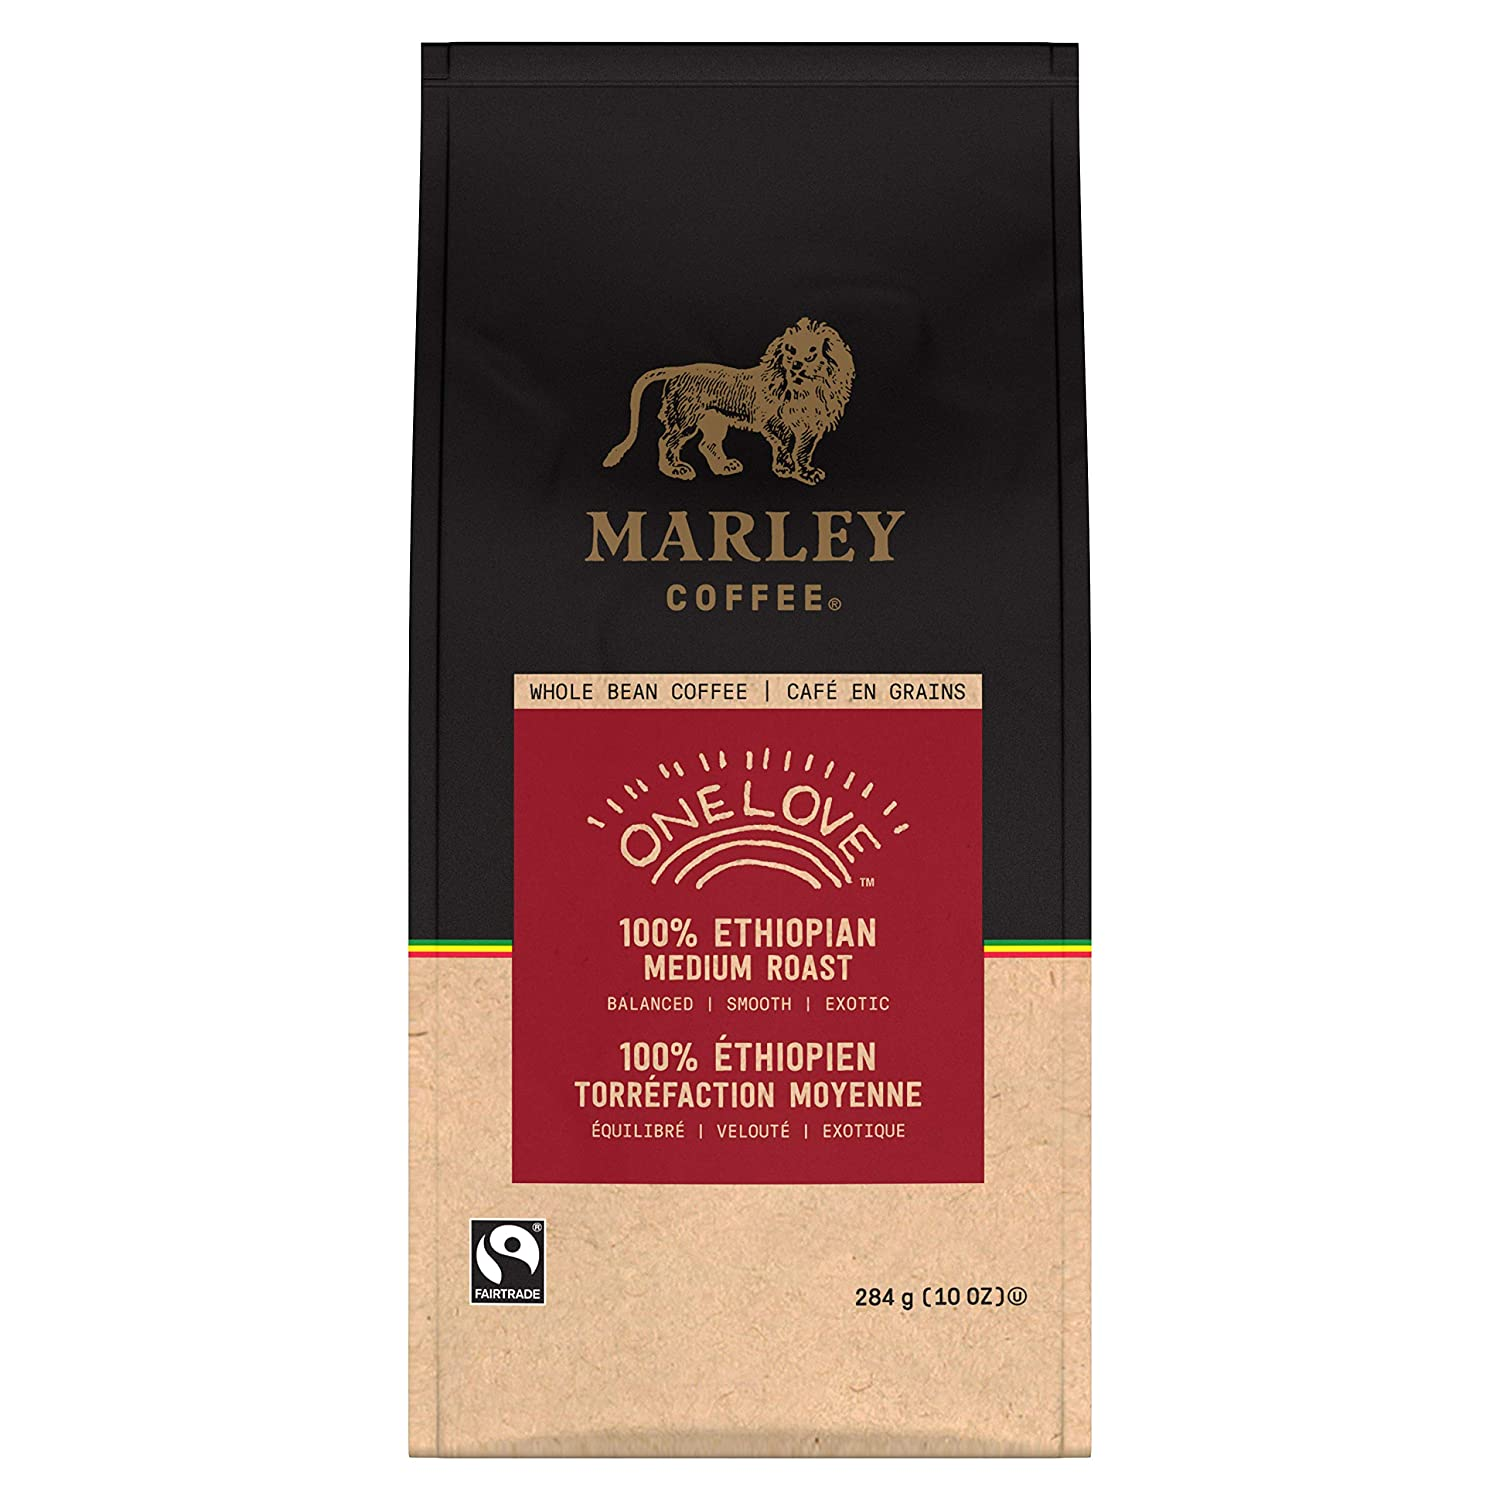 Marley Review